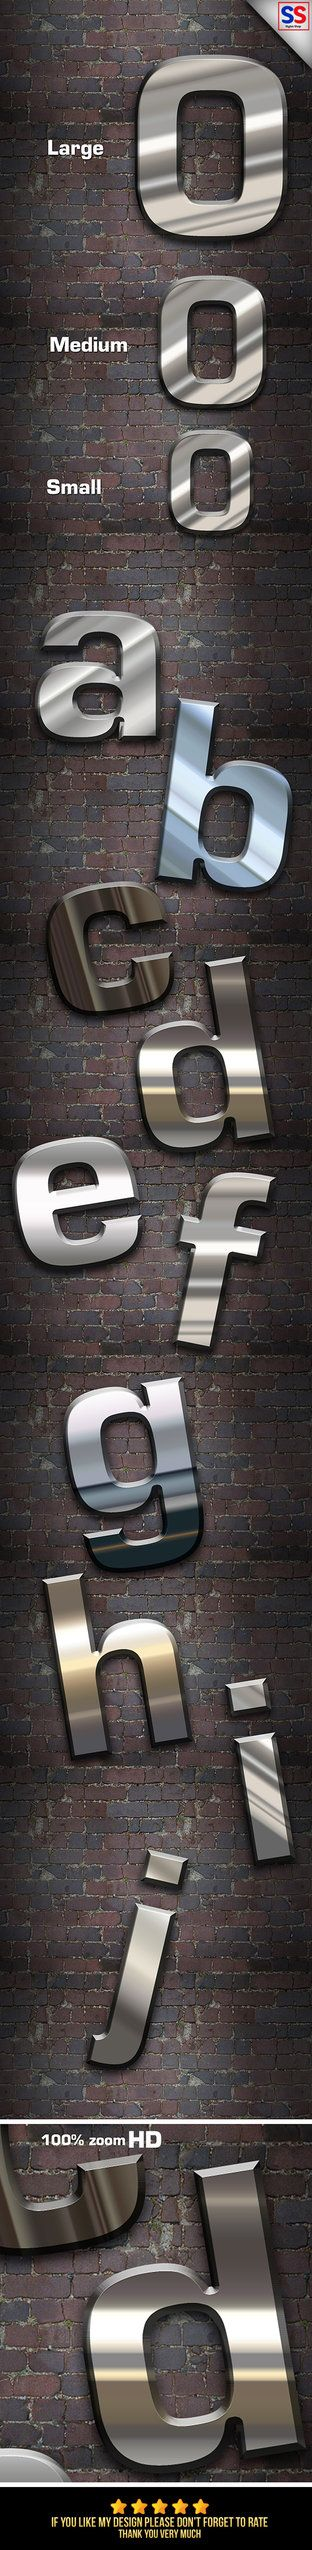 DOWNLOAD:   goo.gl/AJssgsHD Metal Styles (Text Effect or Shape)This Text Effect is a Professional Photoshop Layer Styles, in this set, includes sources files Psd, ASL, and Help fi...